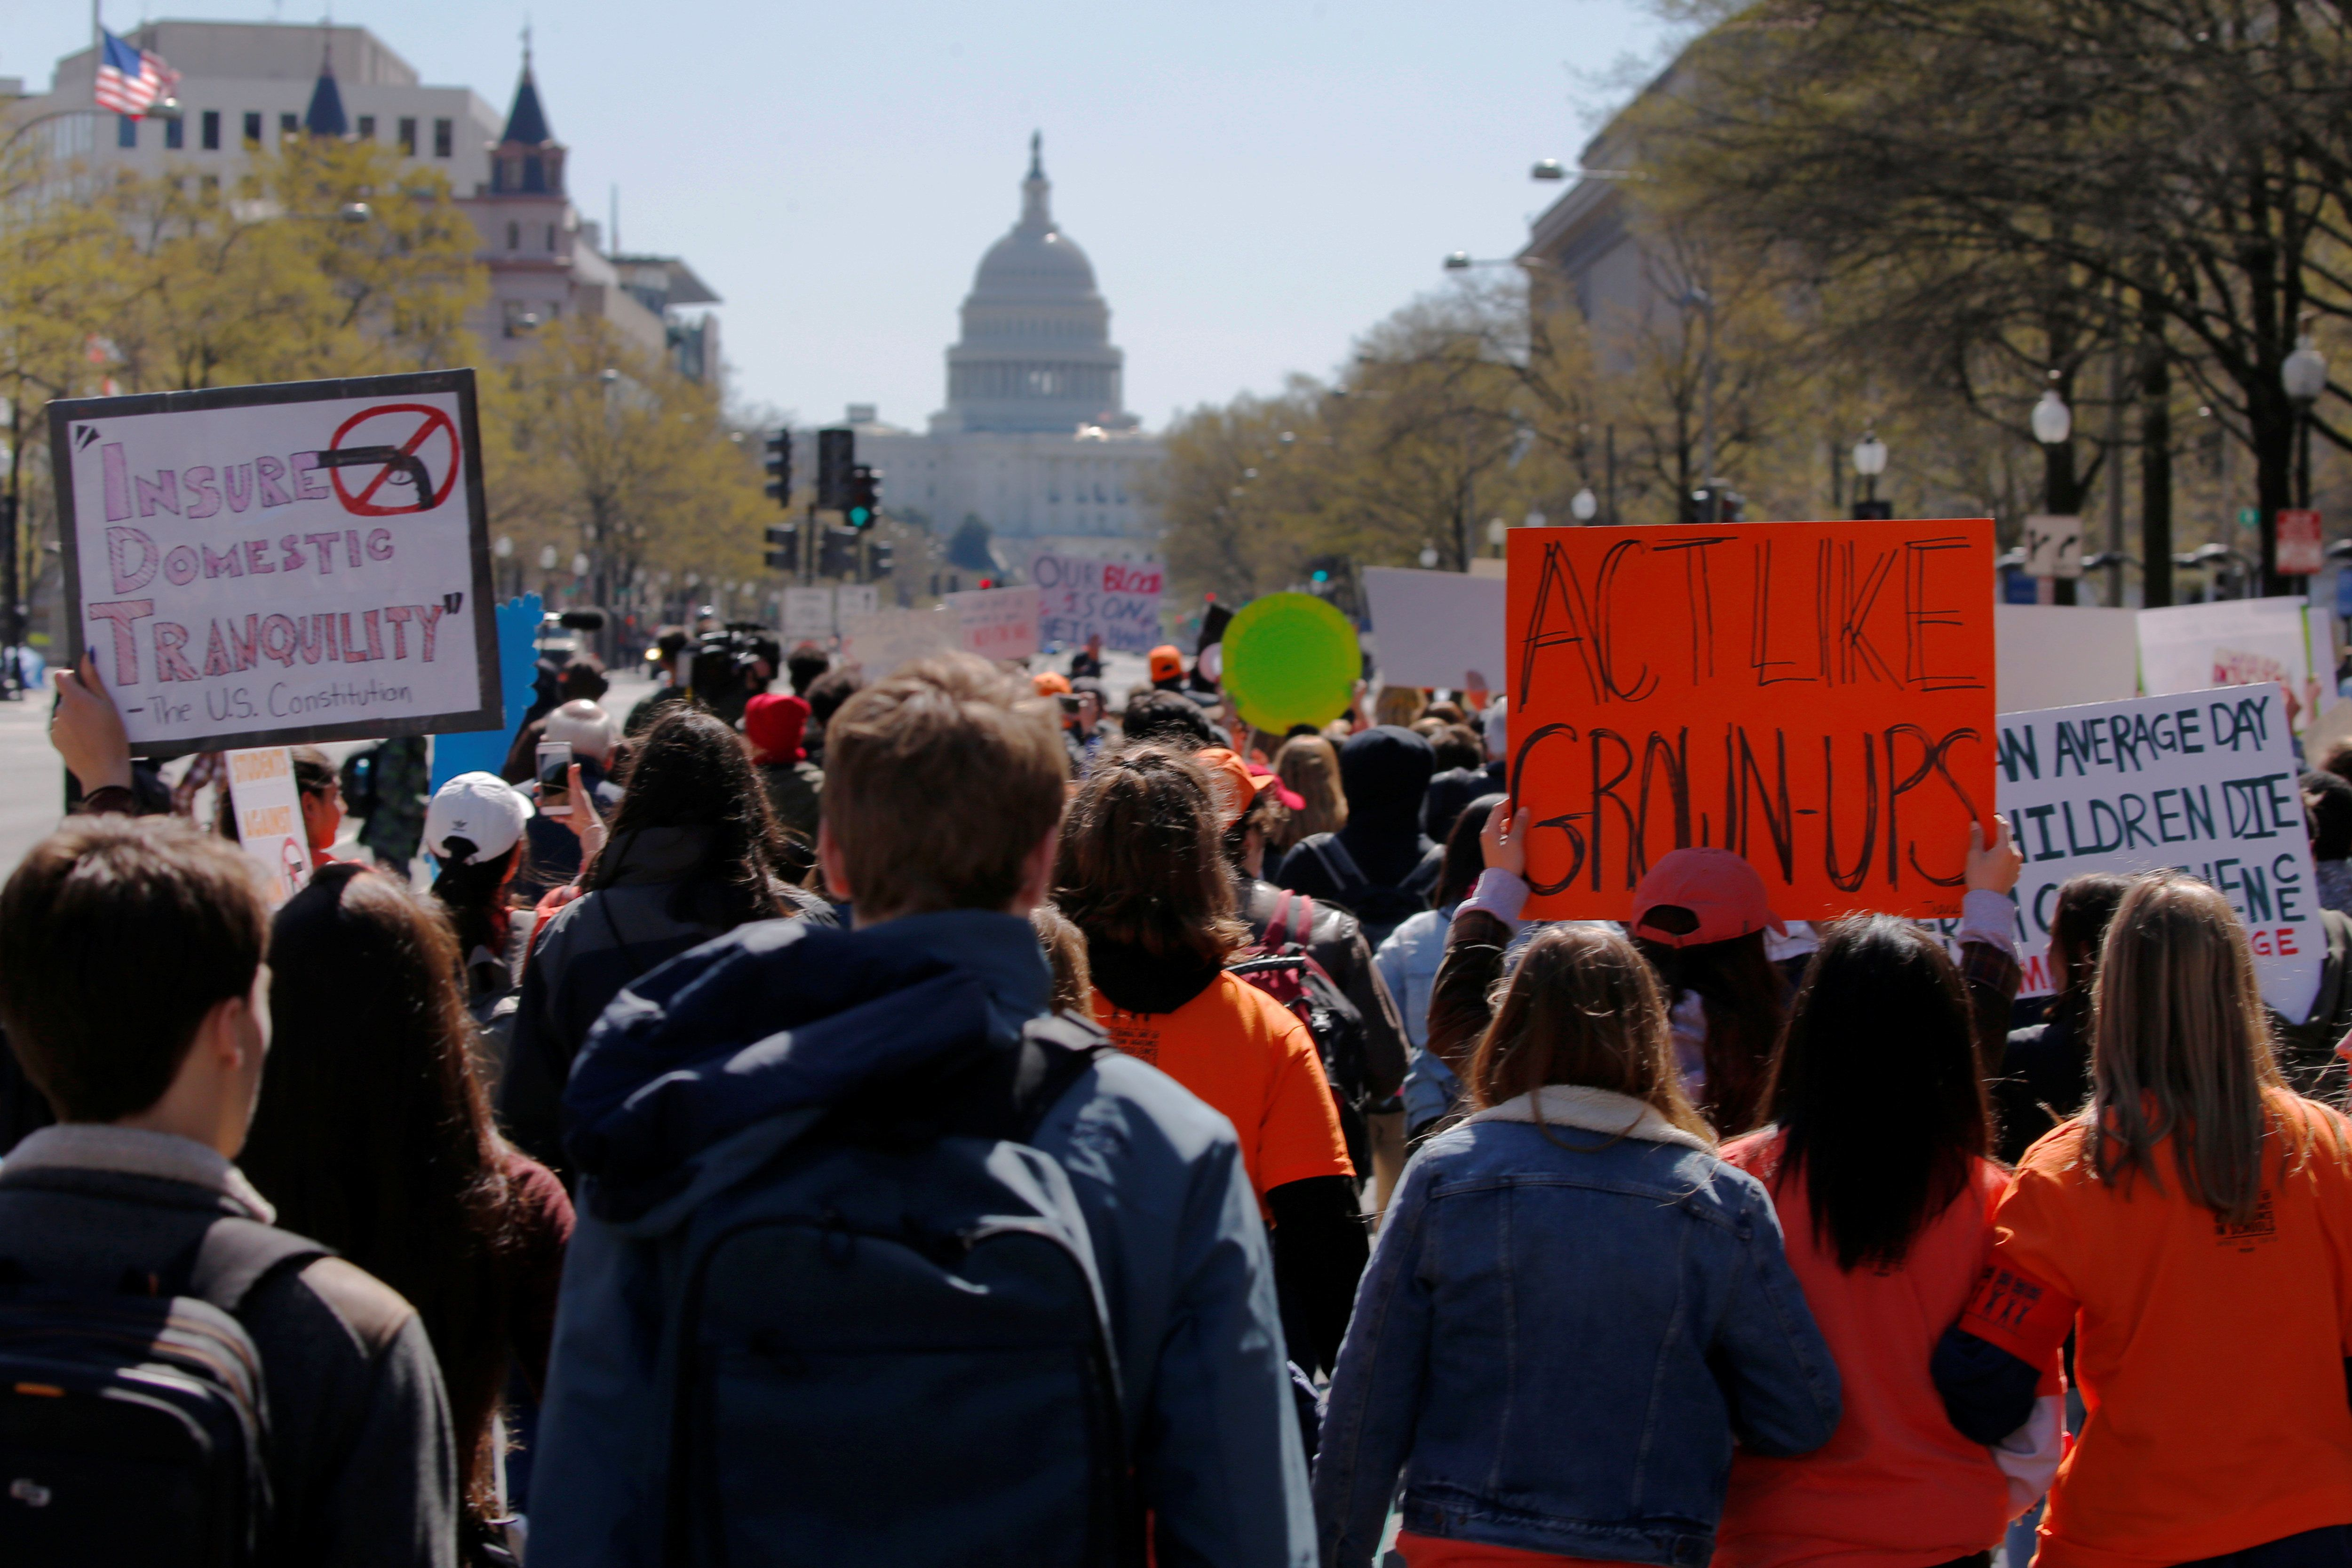 Students march to the U.S. Capitol, as part of a nationwide walk-out of classes to mark the 19th anniversary of the Columbine High School mass shooting, in Washington, DC, U.S., April 20, 2018.   REUTERS/Brian Snyder